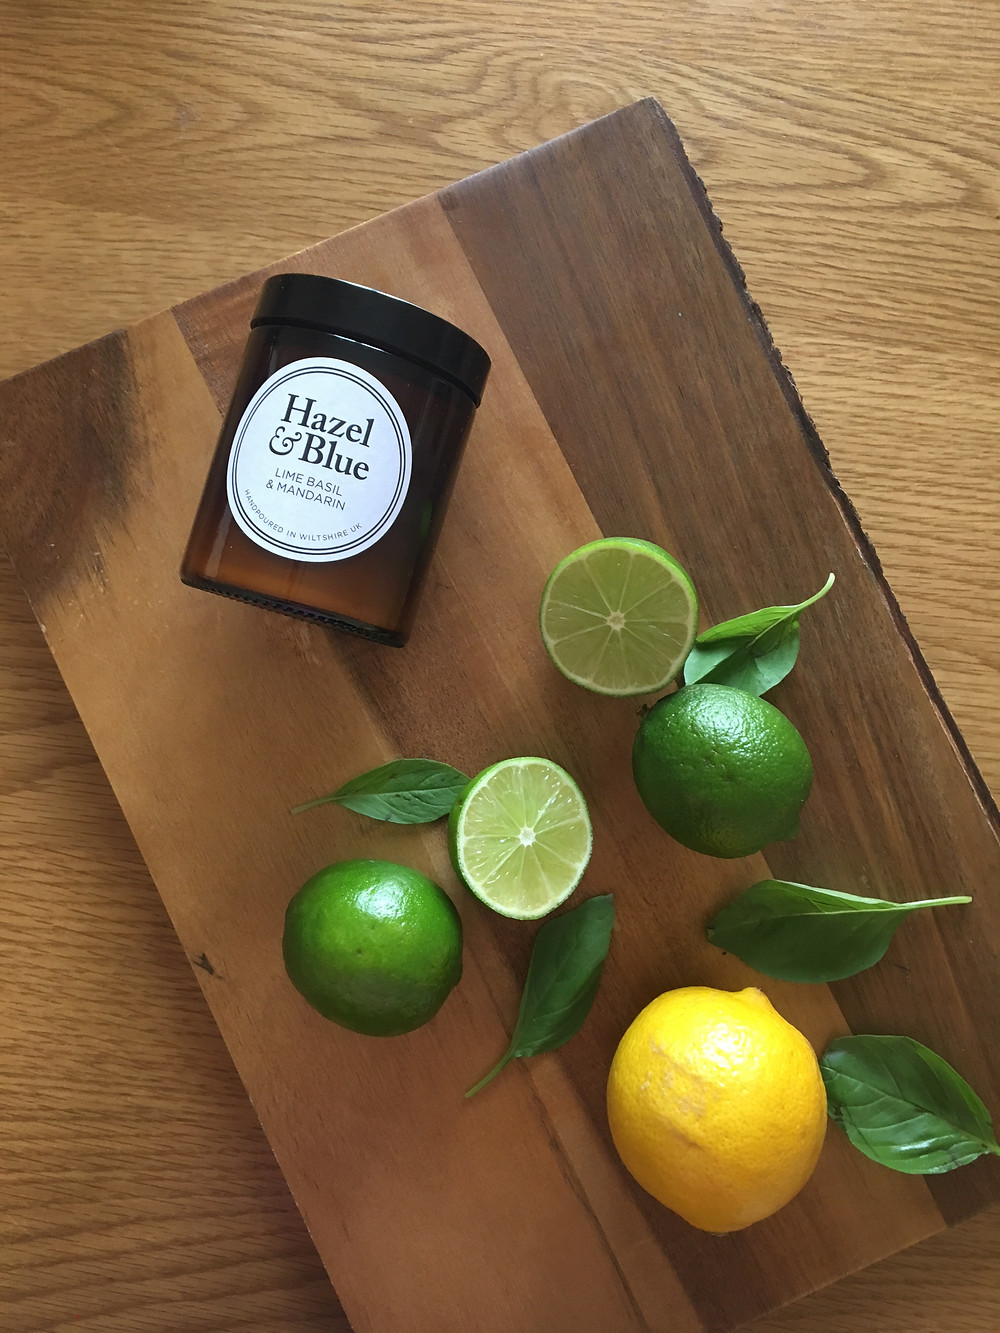 Soy Candles, Citrus scents, best citrus scents, best citrus candles, hazel and blue candles, grapefruit candles, natural soy candles